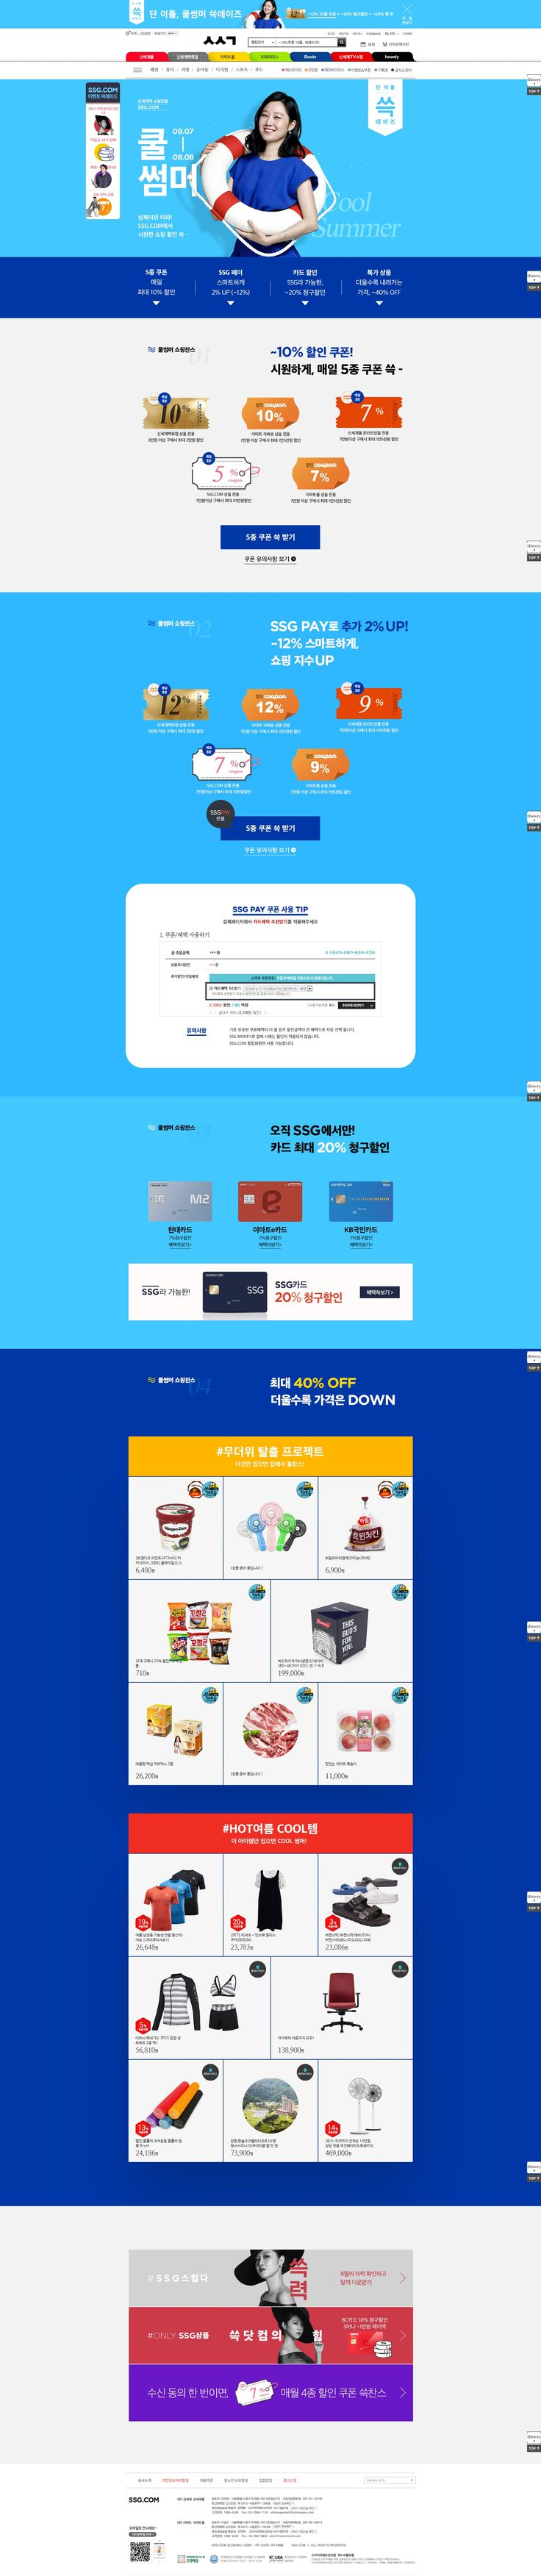 #event page #promotion page #ssg #쓱데이즈 #쿨썸머